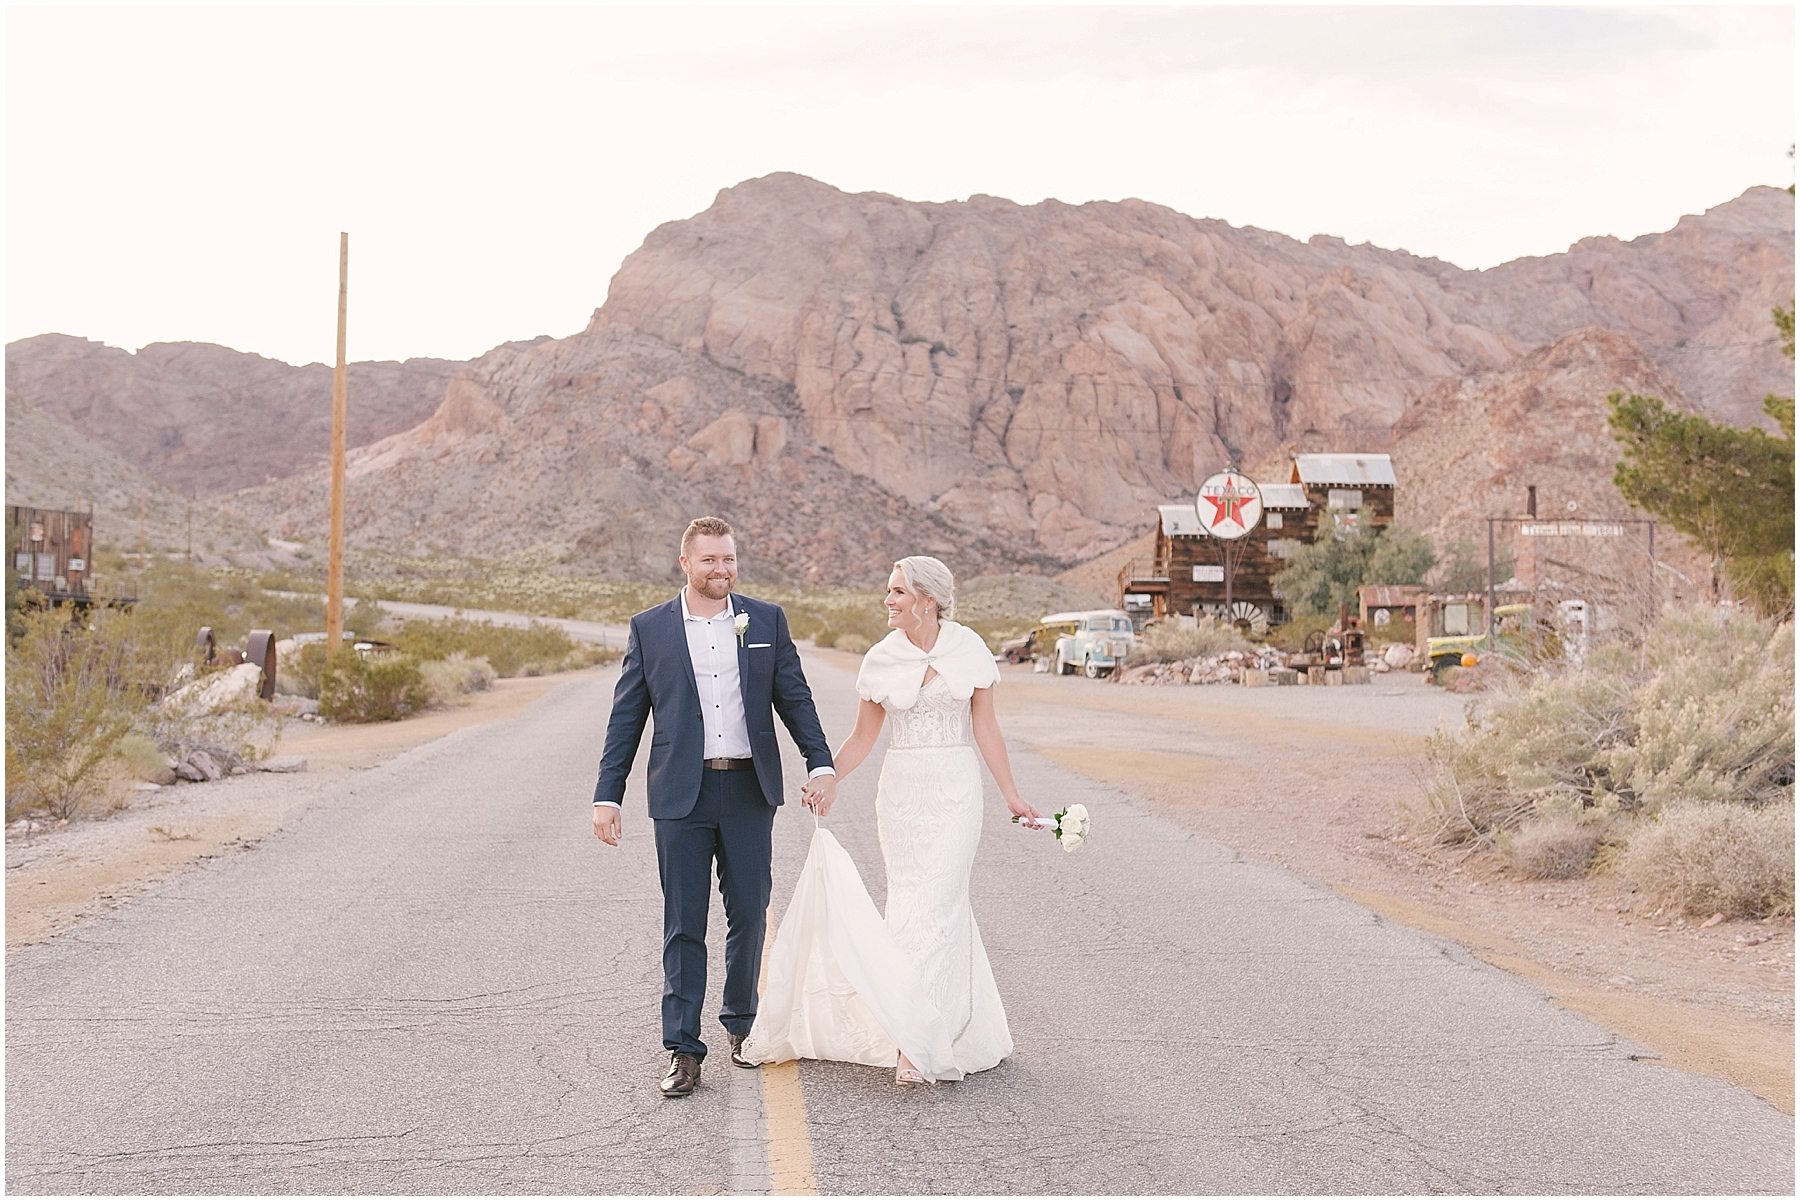 dry_lake_bed_nelson__las_vegas_elopement_photography_blog-09.jpg